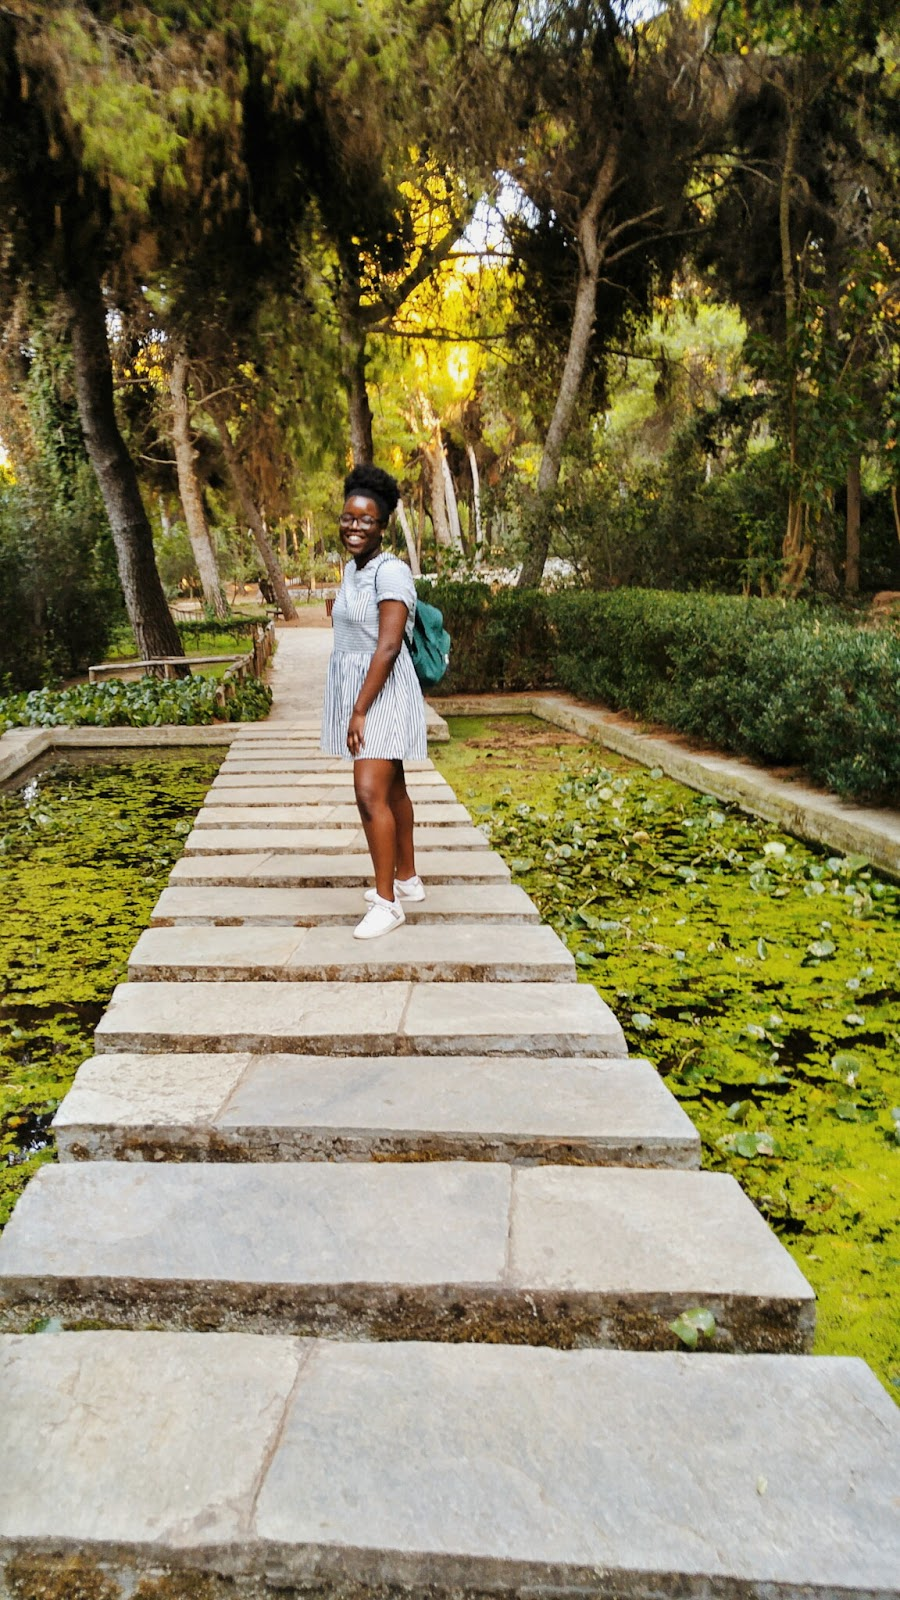 Why You Should Visit Athens' Diomidous Botanical Garden | Read it on www.itsalamb.com #travel #greece #athens #globetrotter #botanicalgarden #vacationideas #tourism #adventure #visit